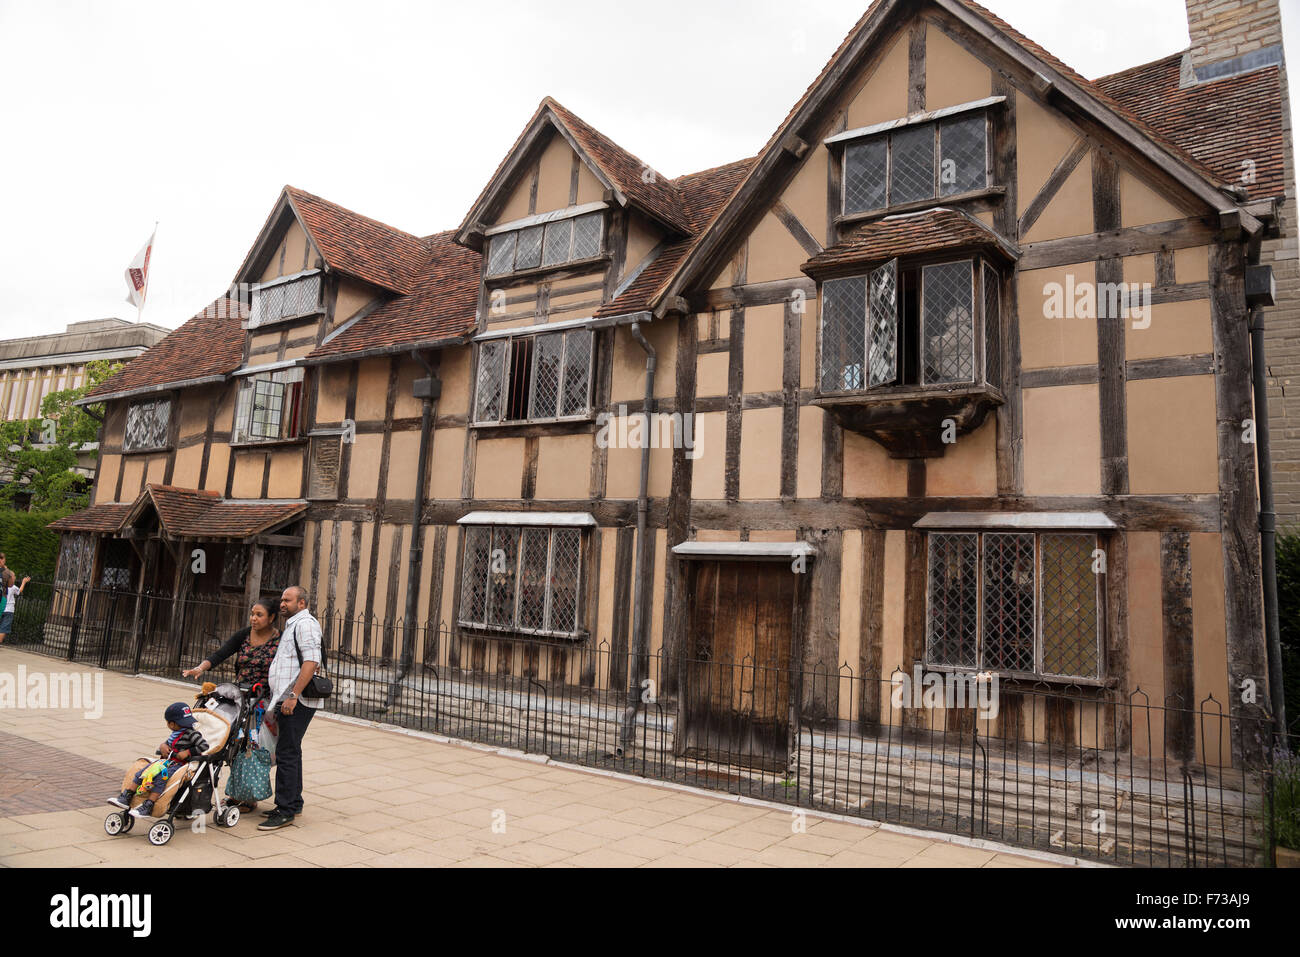 An ethnic family pose in front of a Shakespearean house in stratford-upon-avon - Stock Image